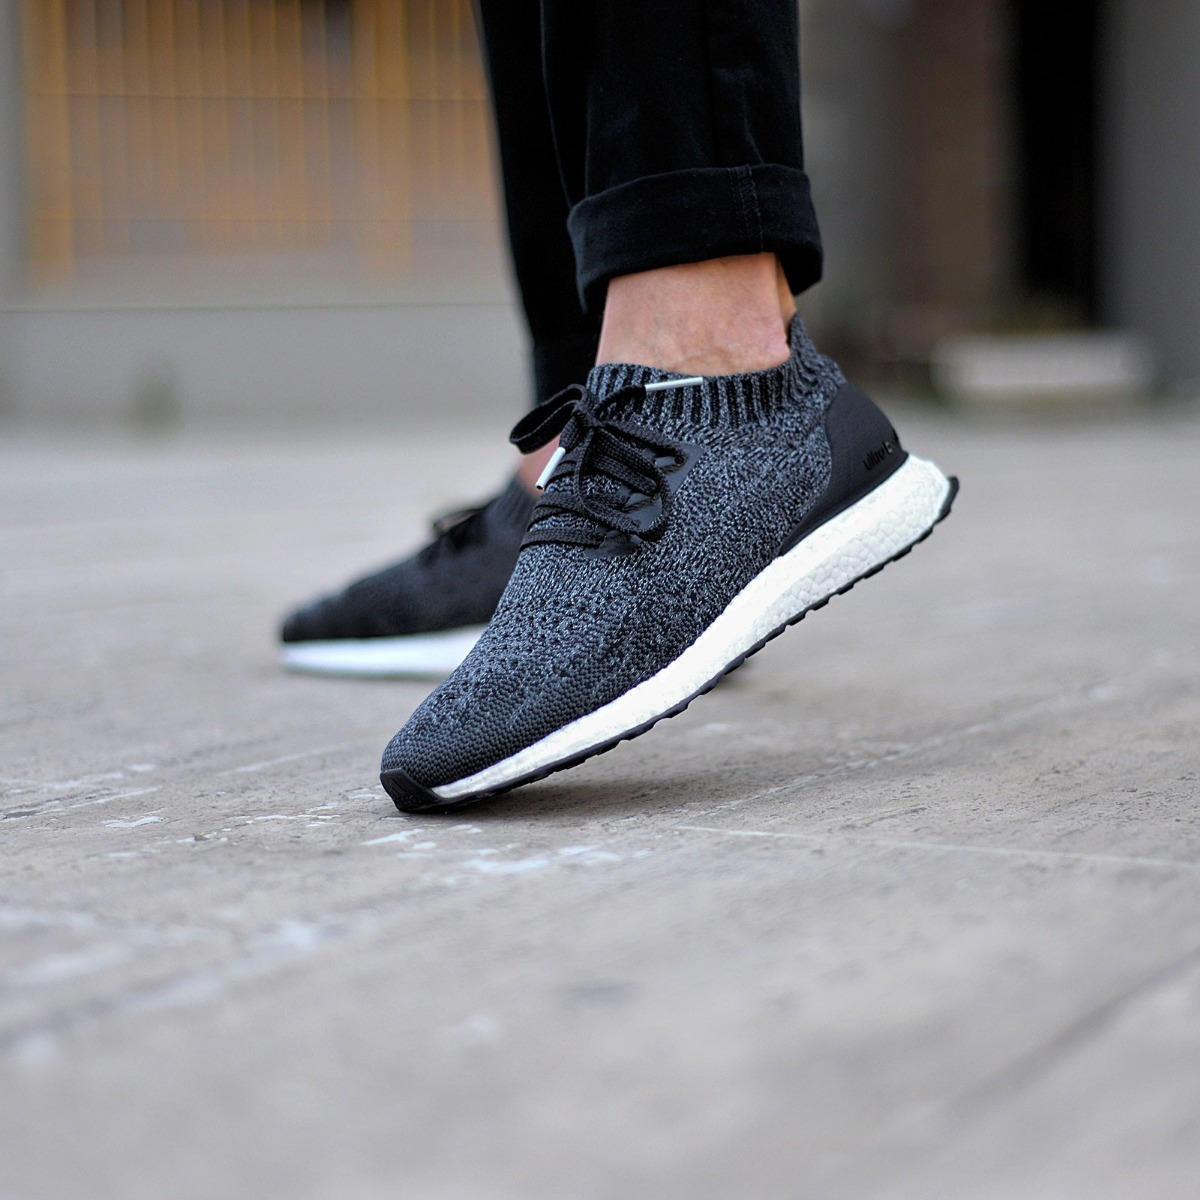 new style 4efc4 8bfe1 Tenis Hombre adidas Ultraboost Uncaged By2551 Running Correr